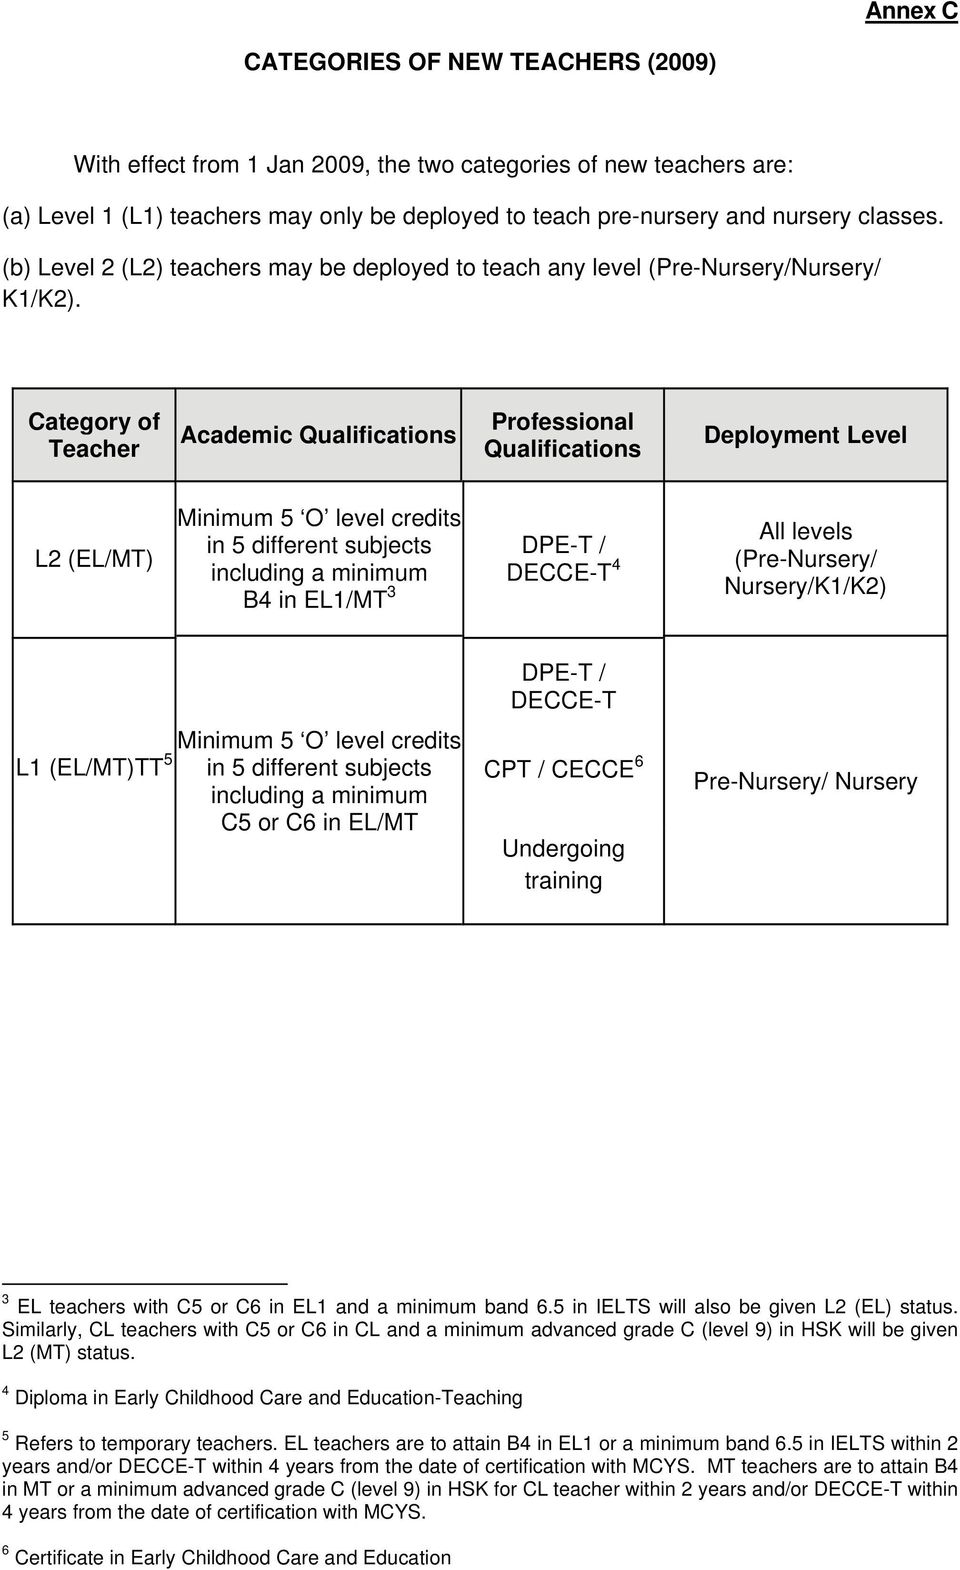 Category of Teacher Academic Qualifications Professional Qualifications Deployment Level L2 (EL/MT) Minimum 5 O level credits in 5 different subjects including a minimum B4 in EL1/MT 3 DPE-T /